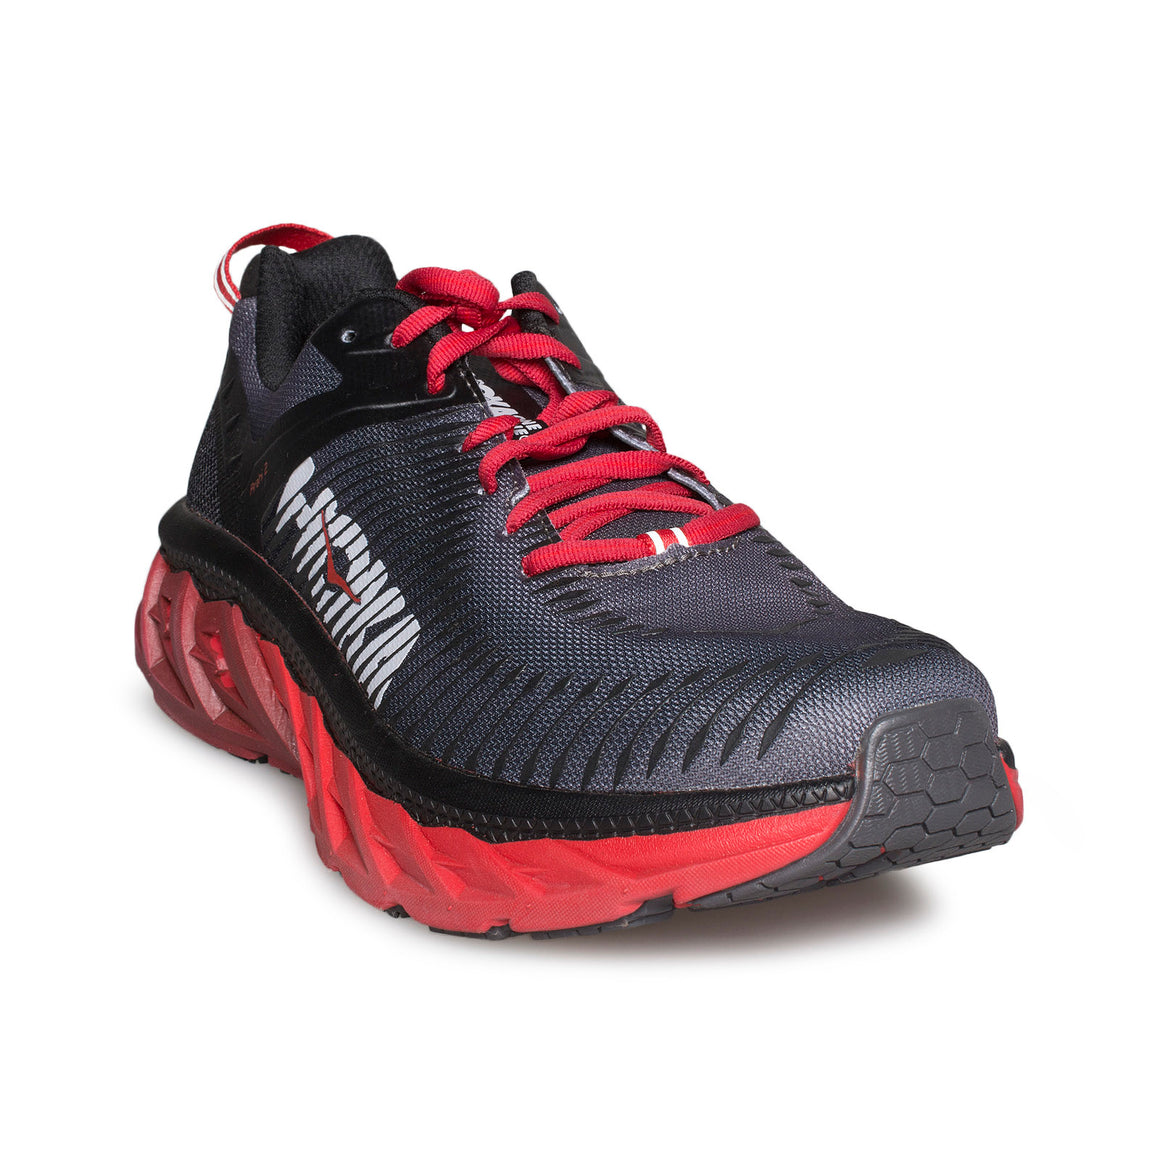 Hoka One One Arahi 2 Black / Risk Red Running Shoes - Men's